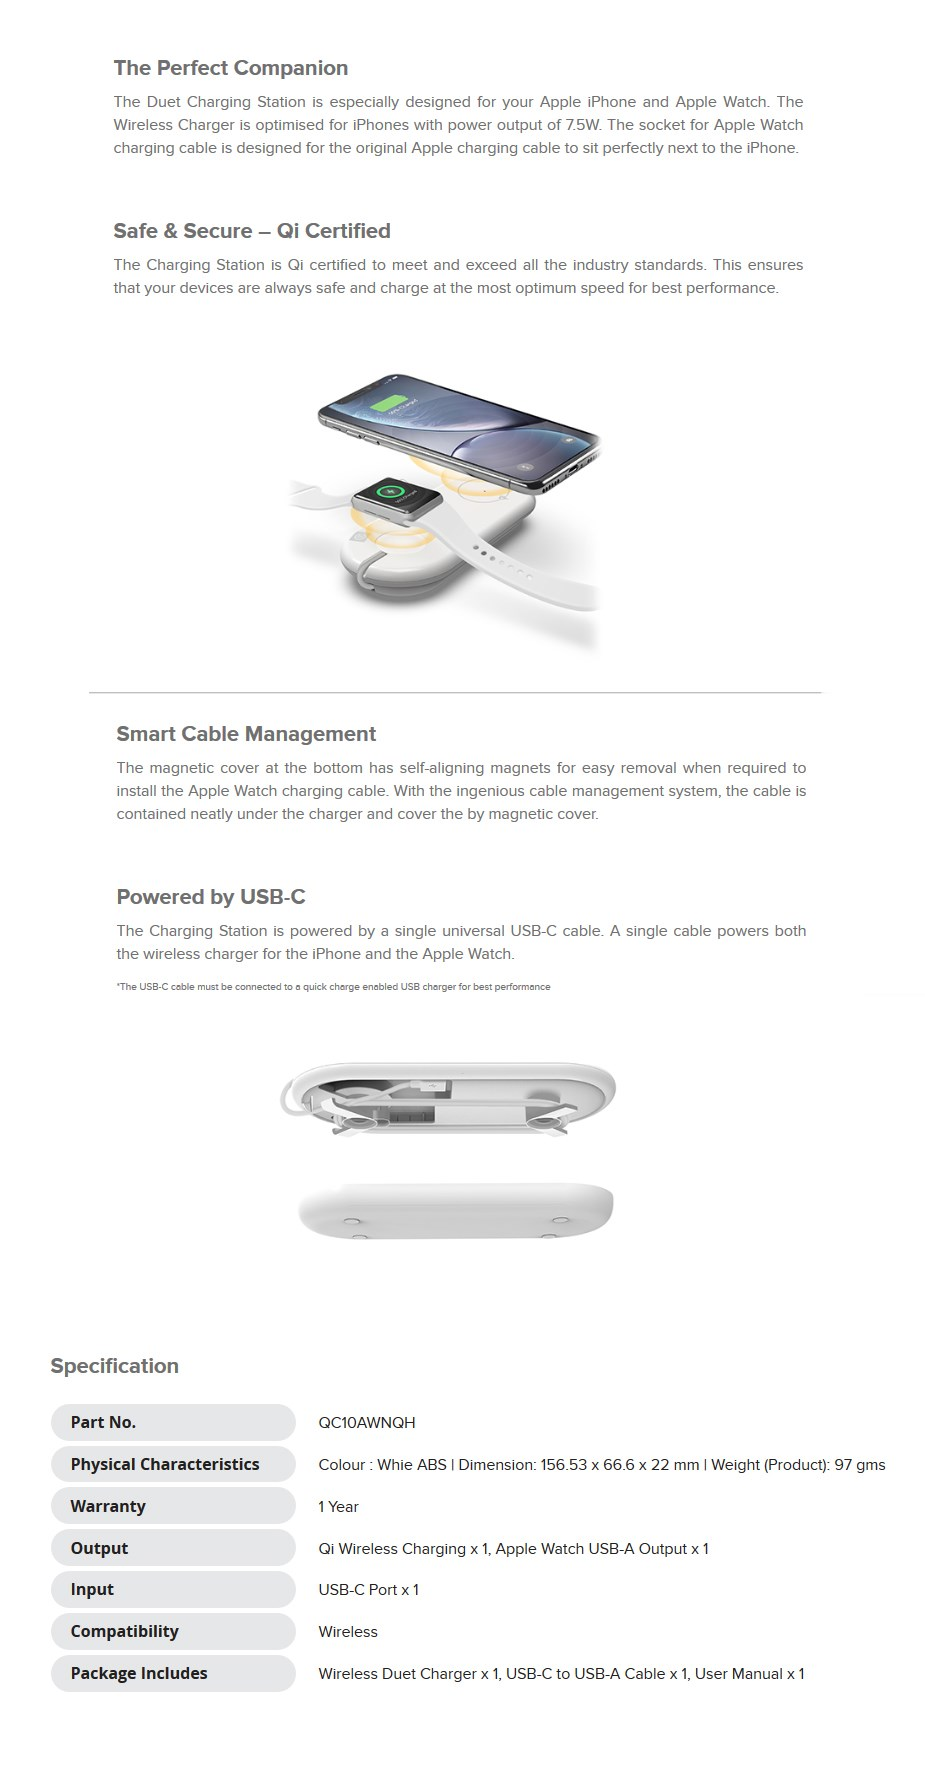 Alogic Wireless Duet Charging Station for iPhone & Apple Watch - White - Desktop Overview 2